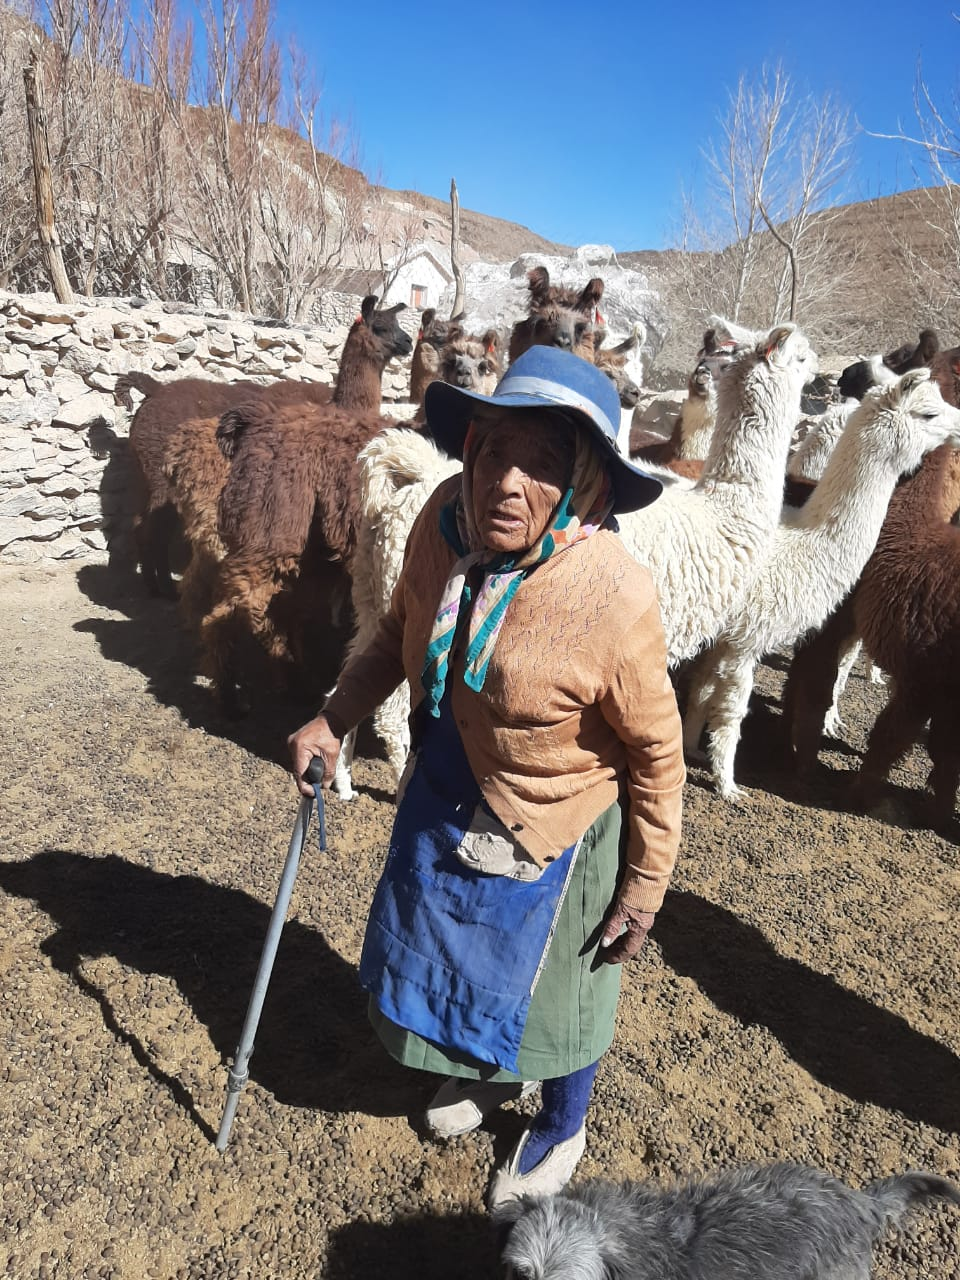 Woman herder in Argentina